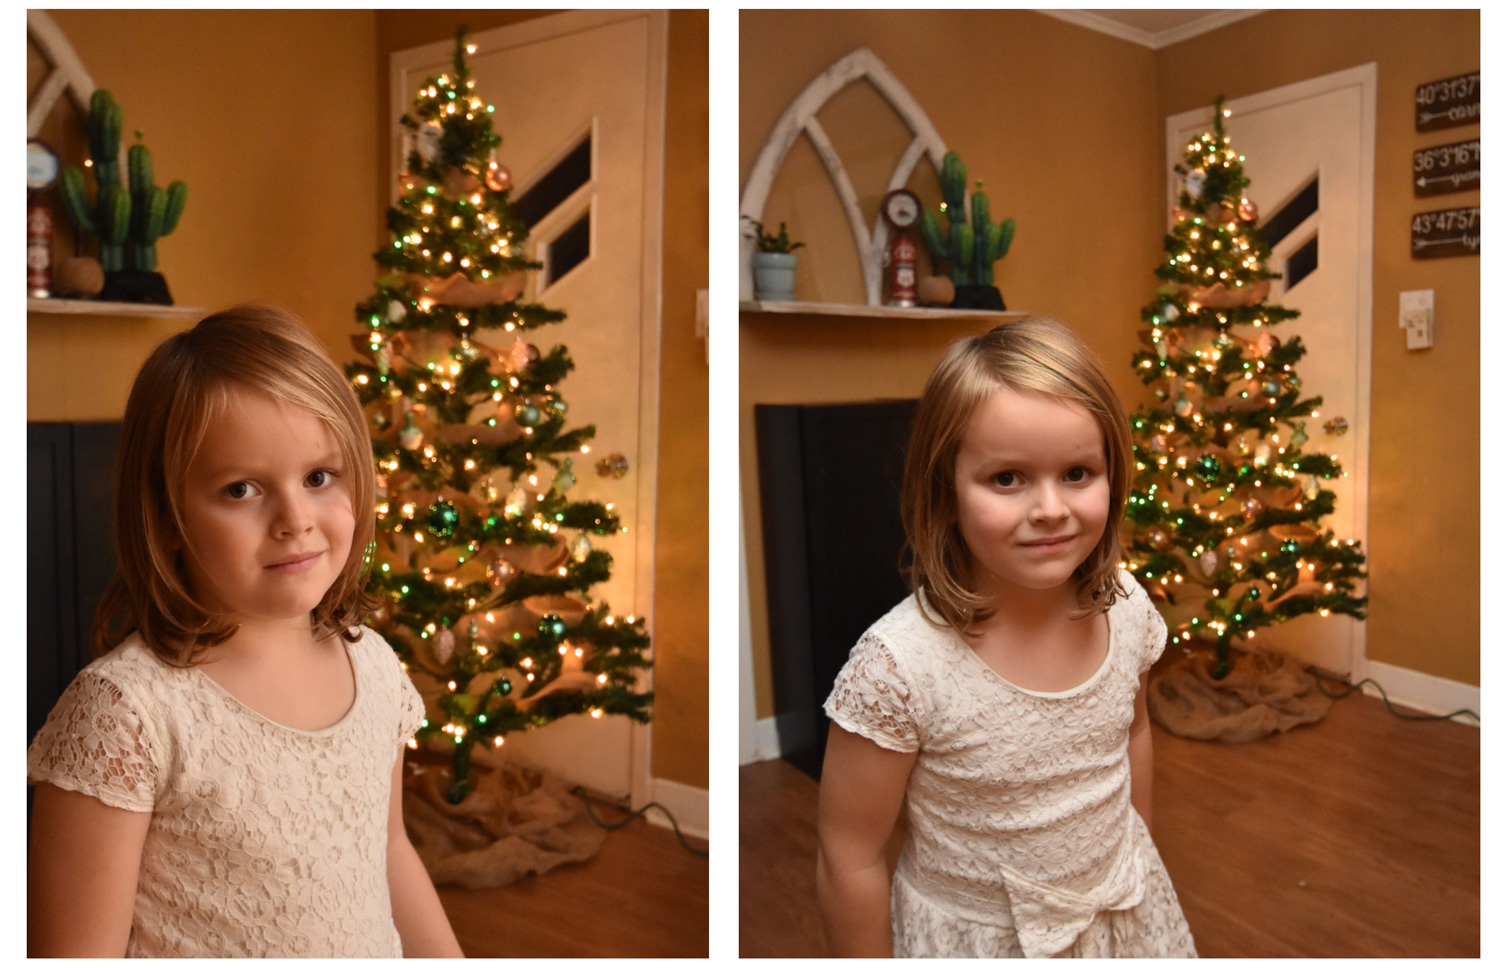 Image: I used an external flash for both of these photos. For the photo on the left, I pointed the f...